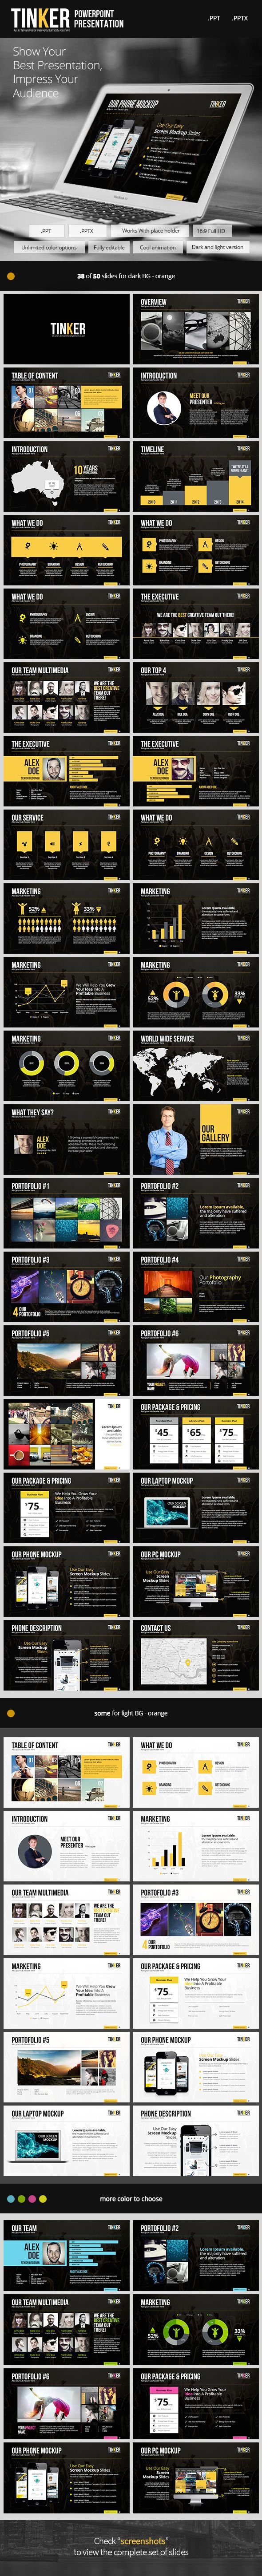 TINKER - Powerpoint Template #powerpoint #powerpointtemplate Download: http://graphicriver.net/item/tinker-powerpoint-template/9101636?ref=ksioks